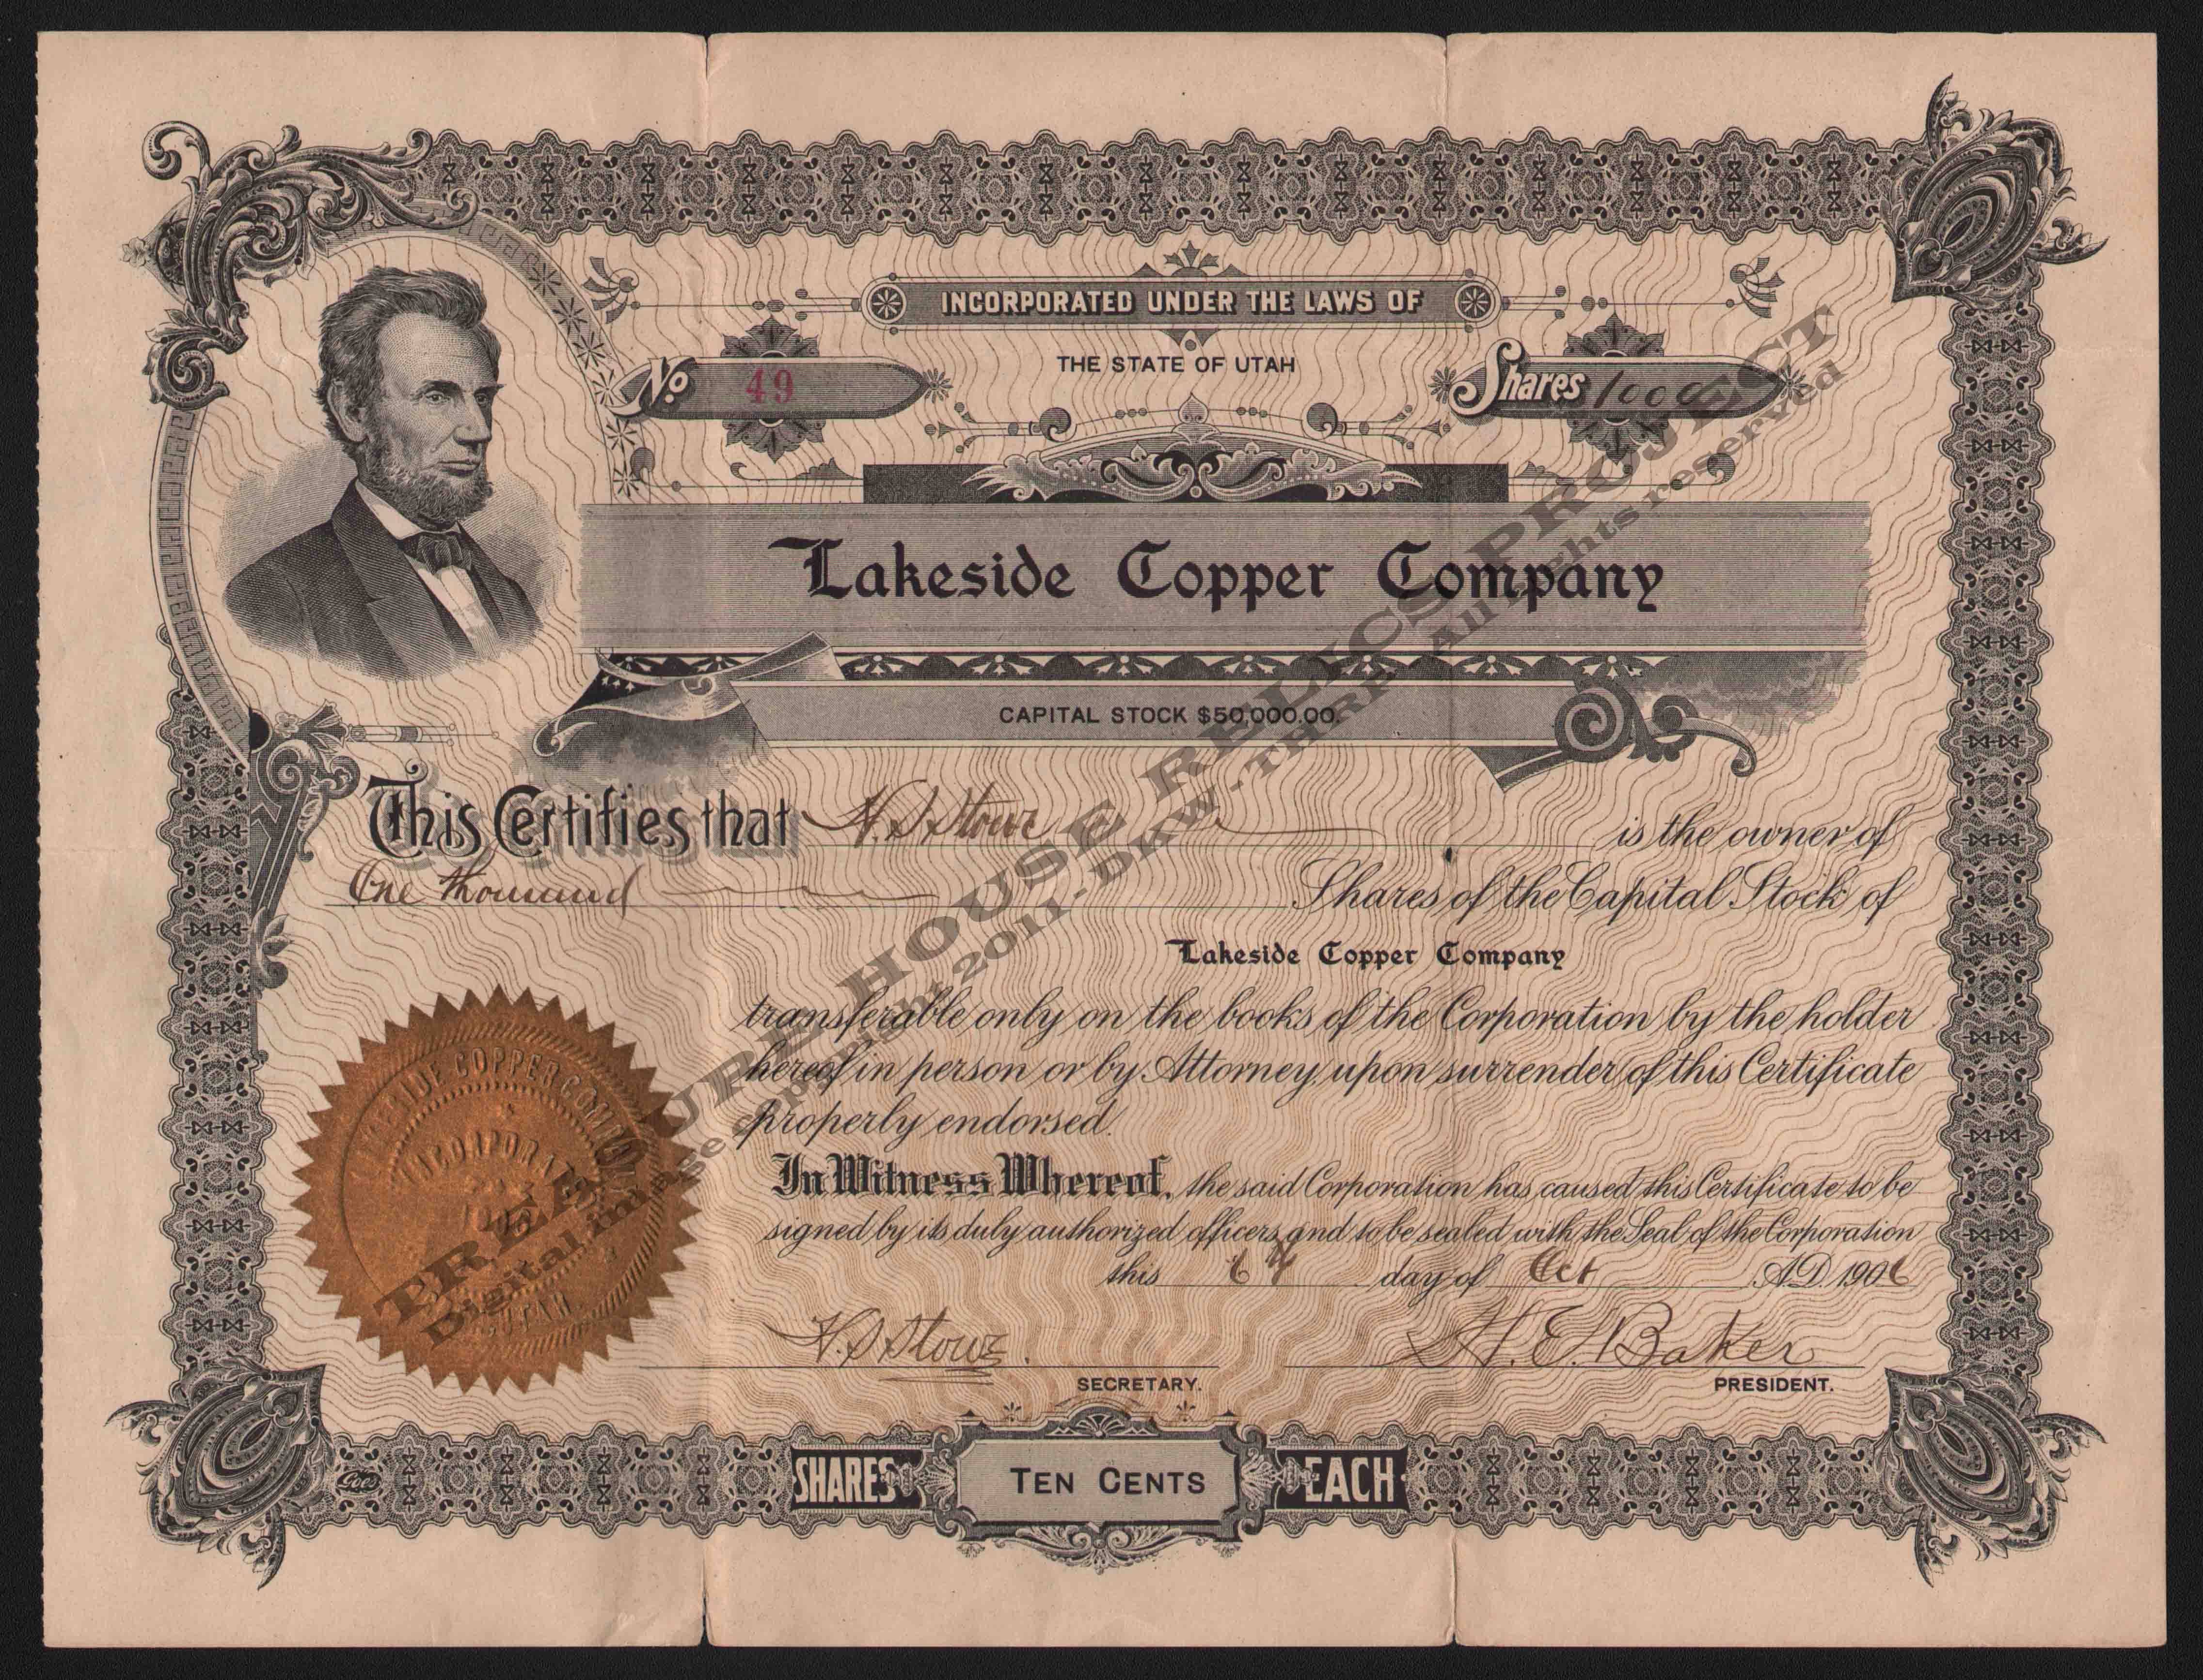 LAKESIDE_COPPER_COMPANY_1906_49_400_emboss.jpg